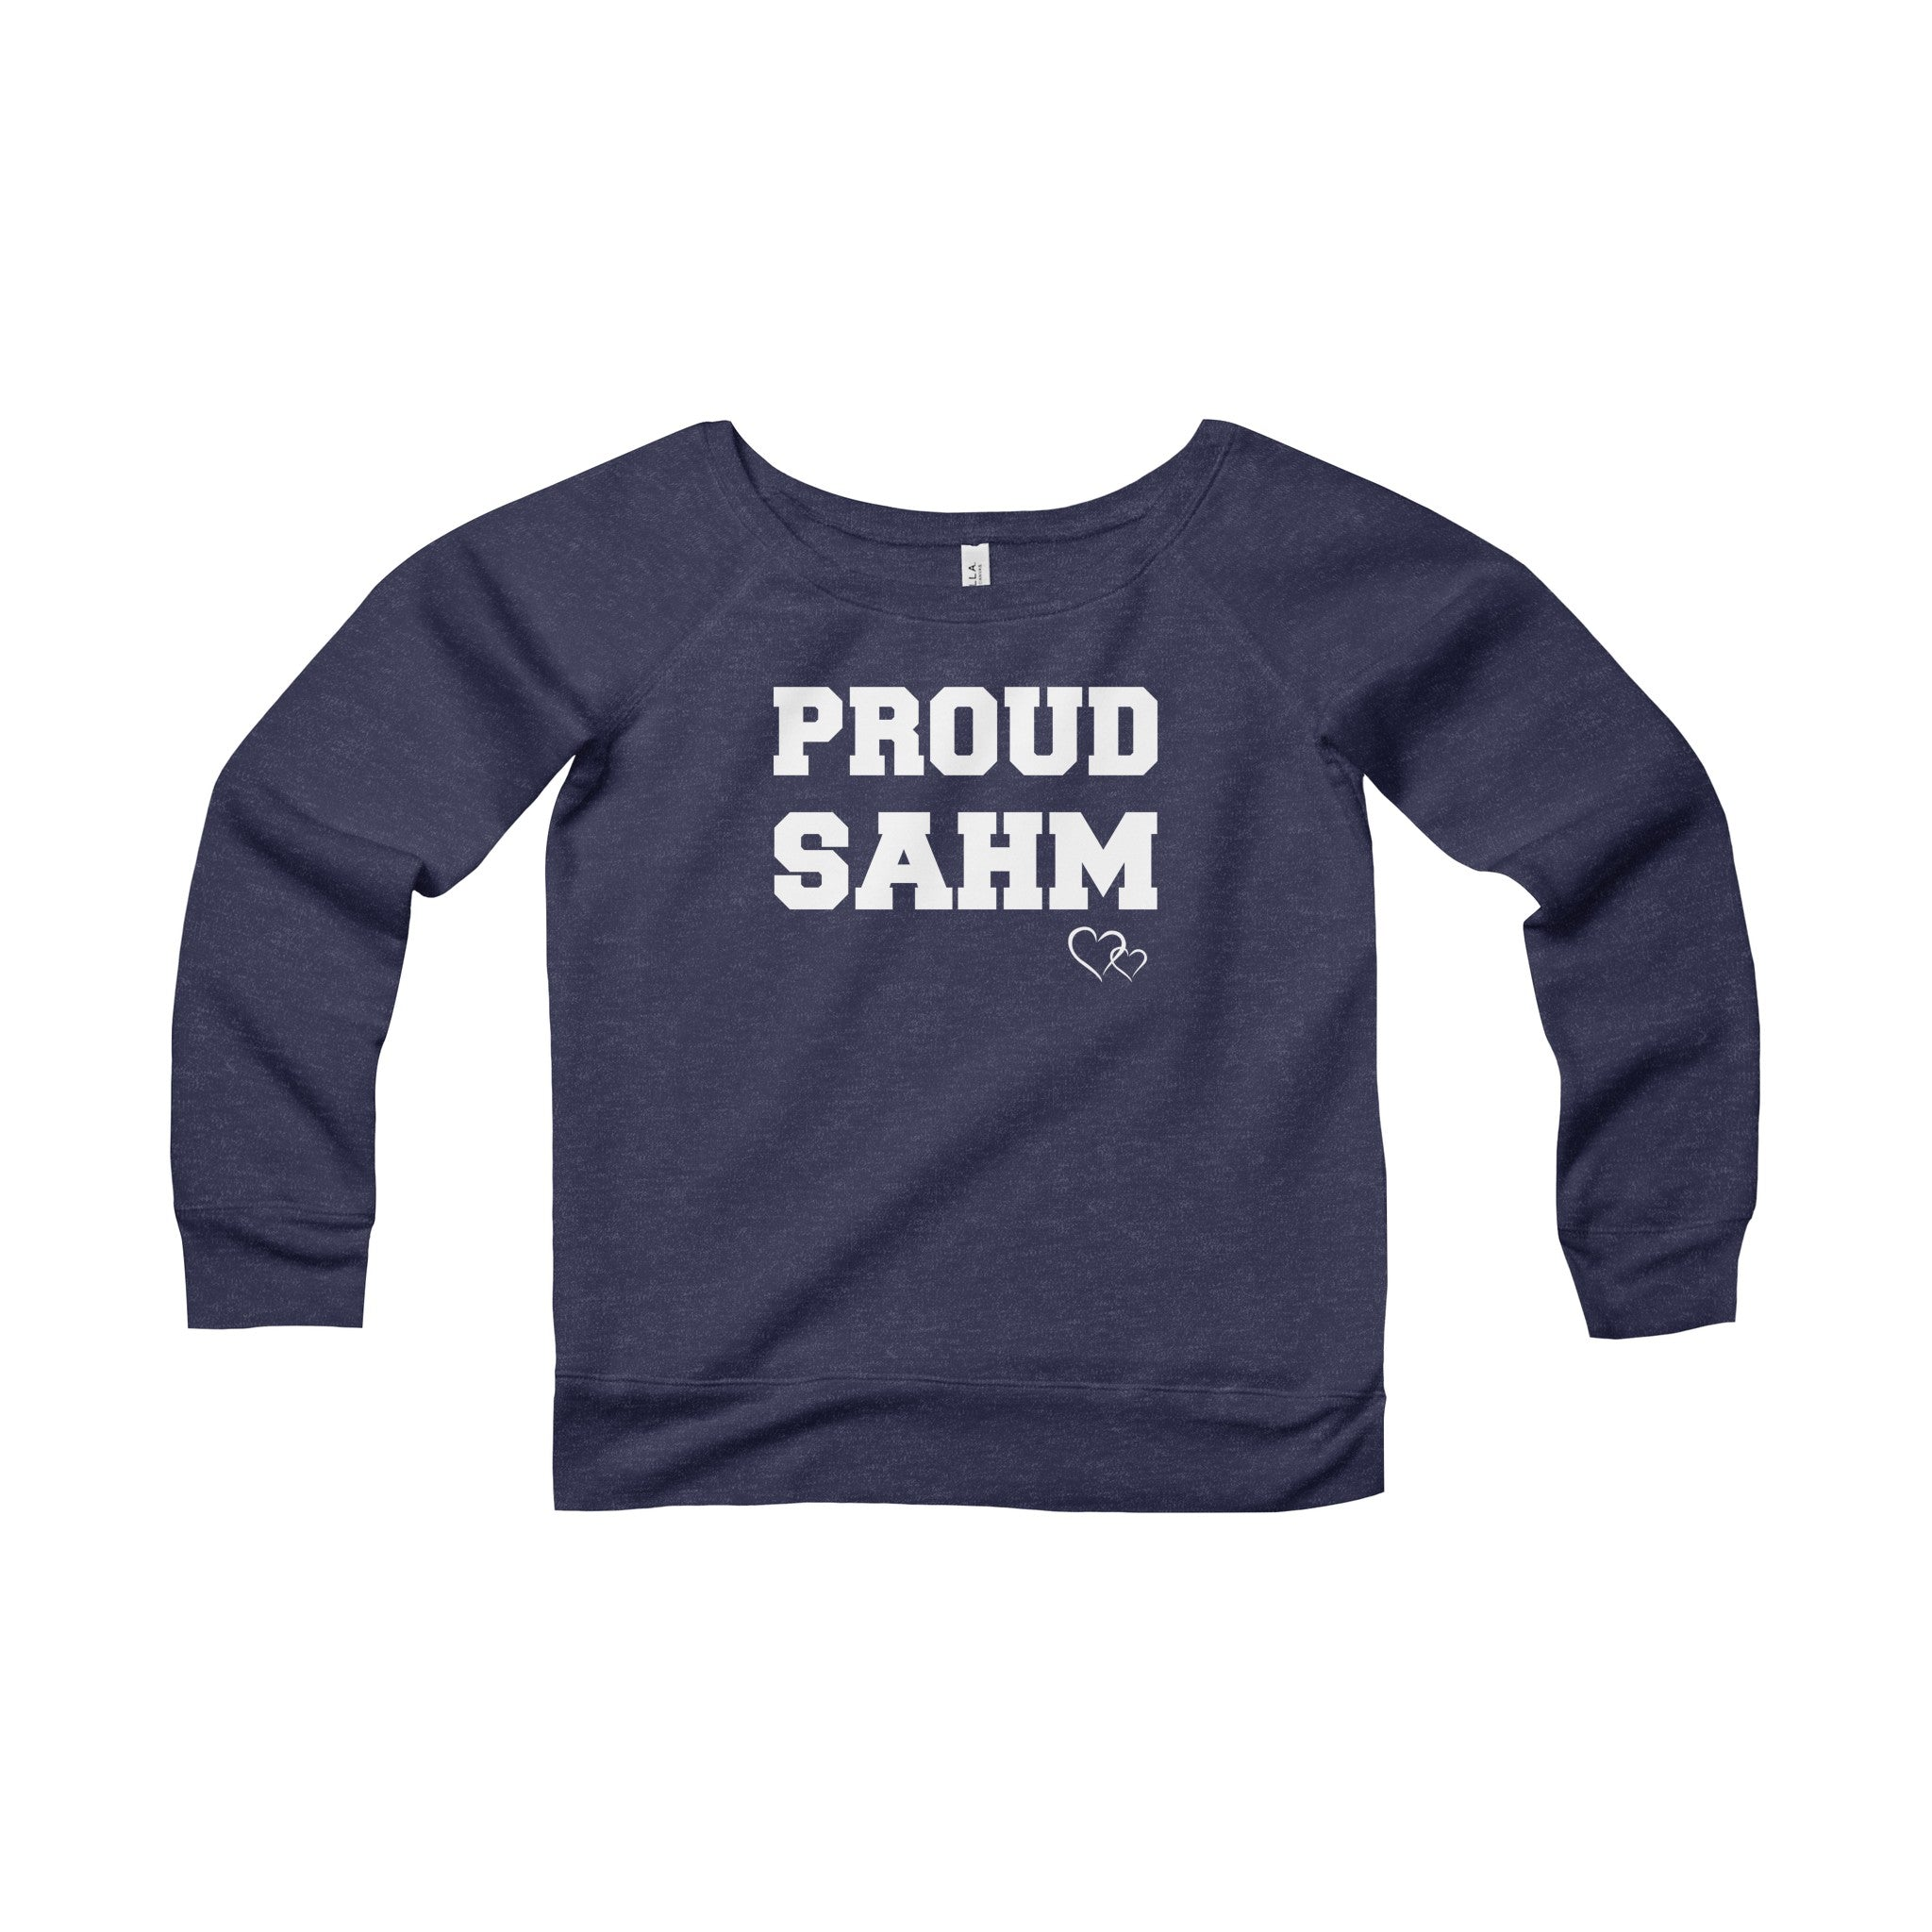 PROUD SAHM - Wide Neck Sweatshirt